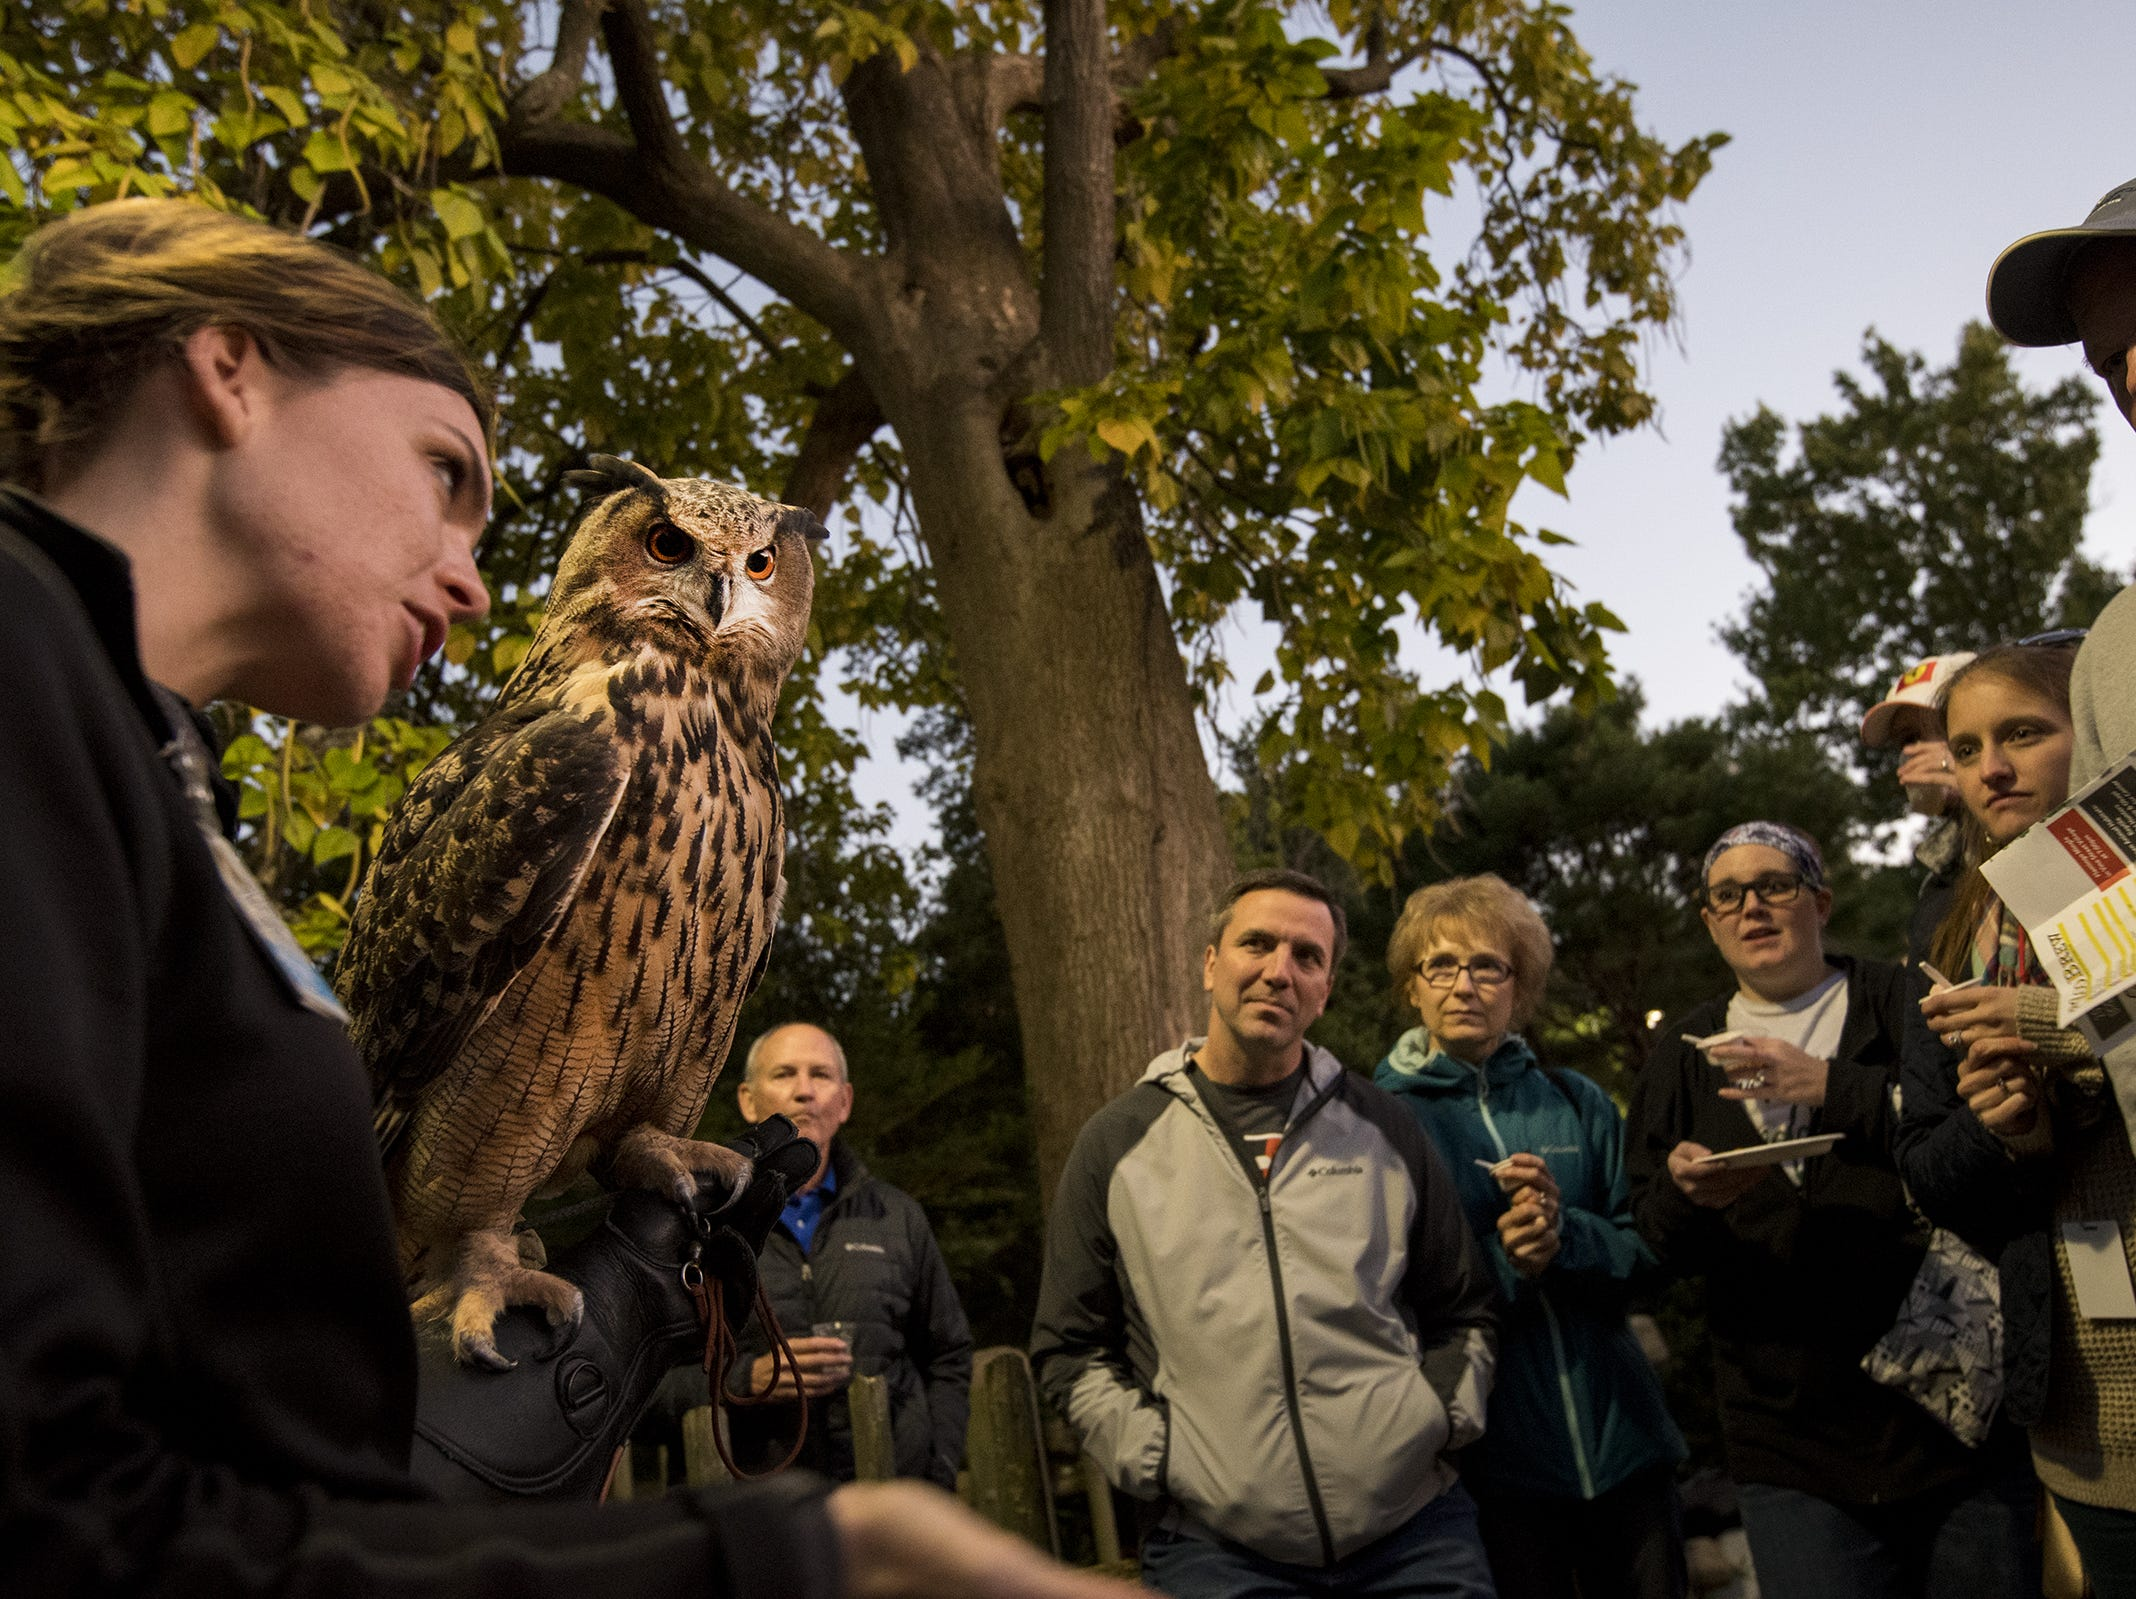 Guests get an up-close encounter with one of the zoo's Great Horned Owls.